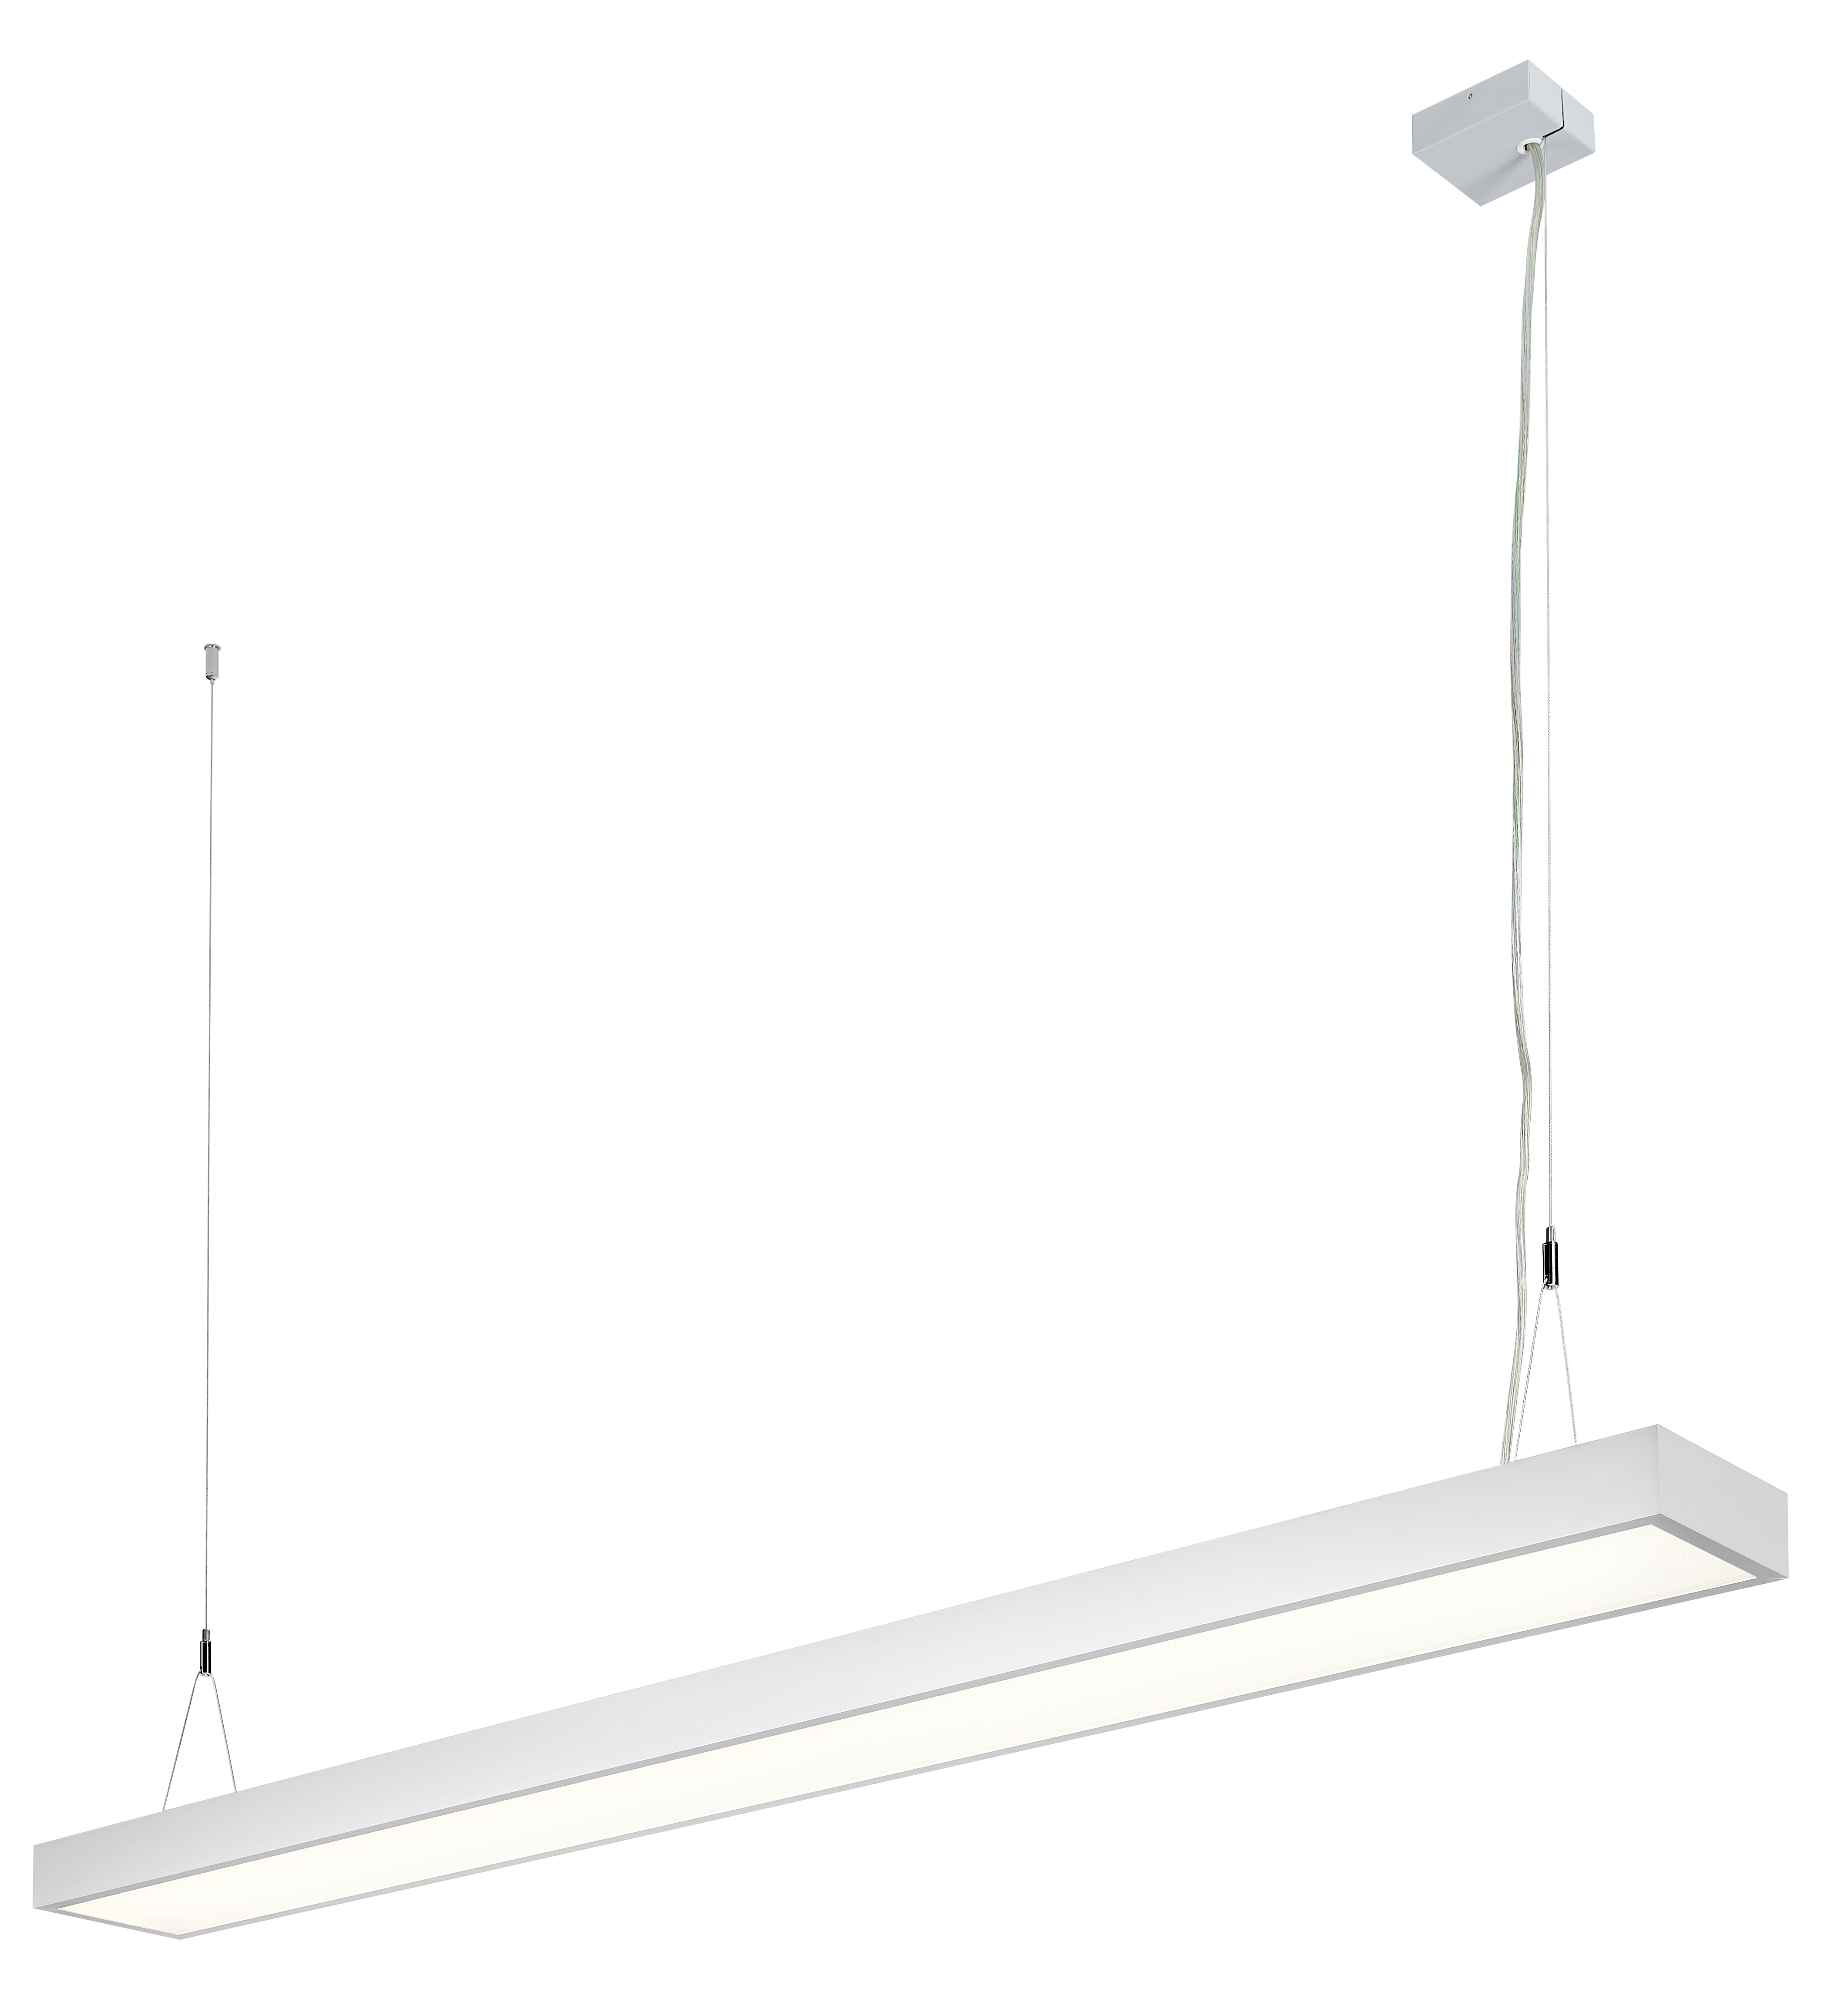 1 Stk Office LED D/I 86W, 4000K 9735lm, DALI, eloxiert L-1,5m LI38OF0061